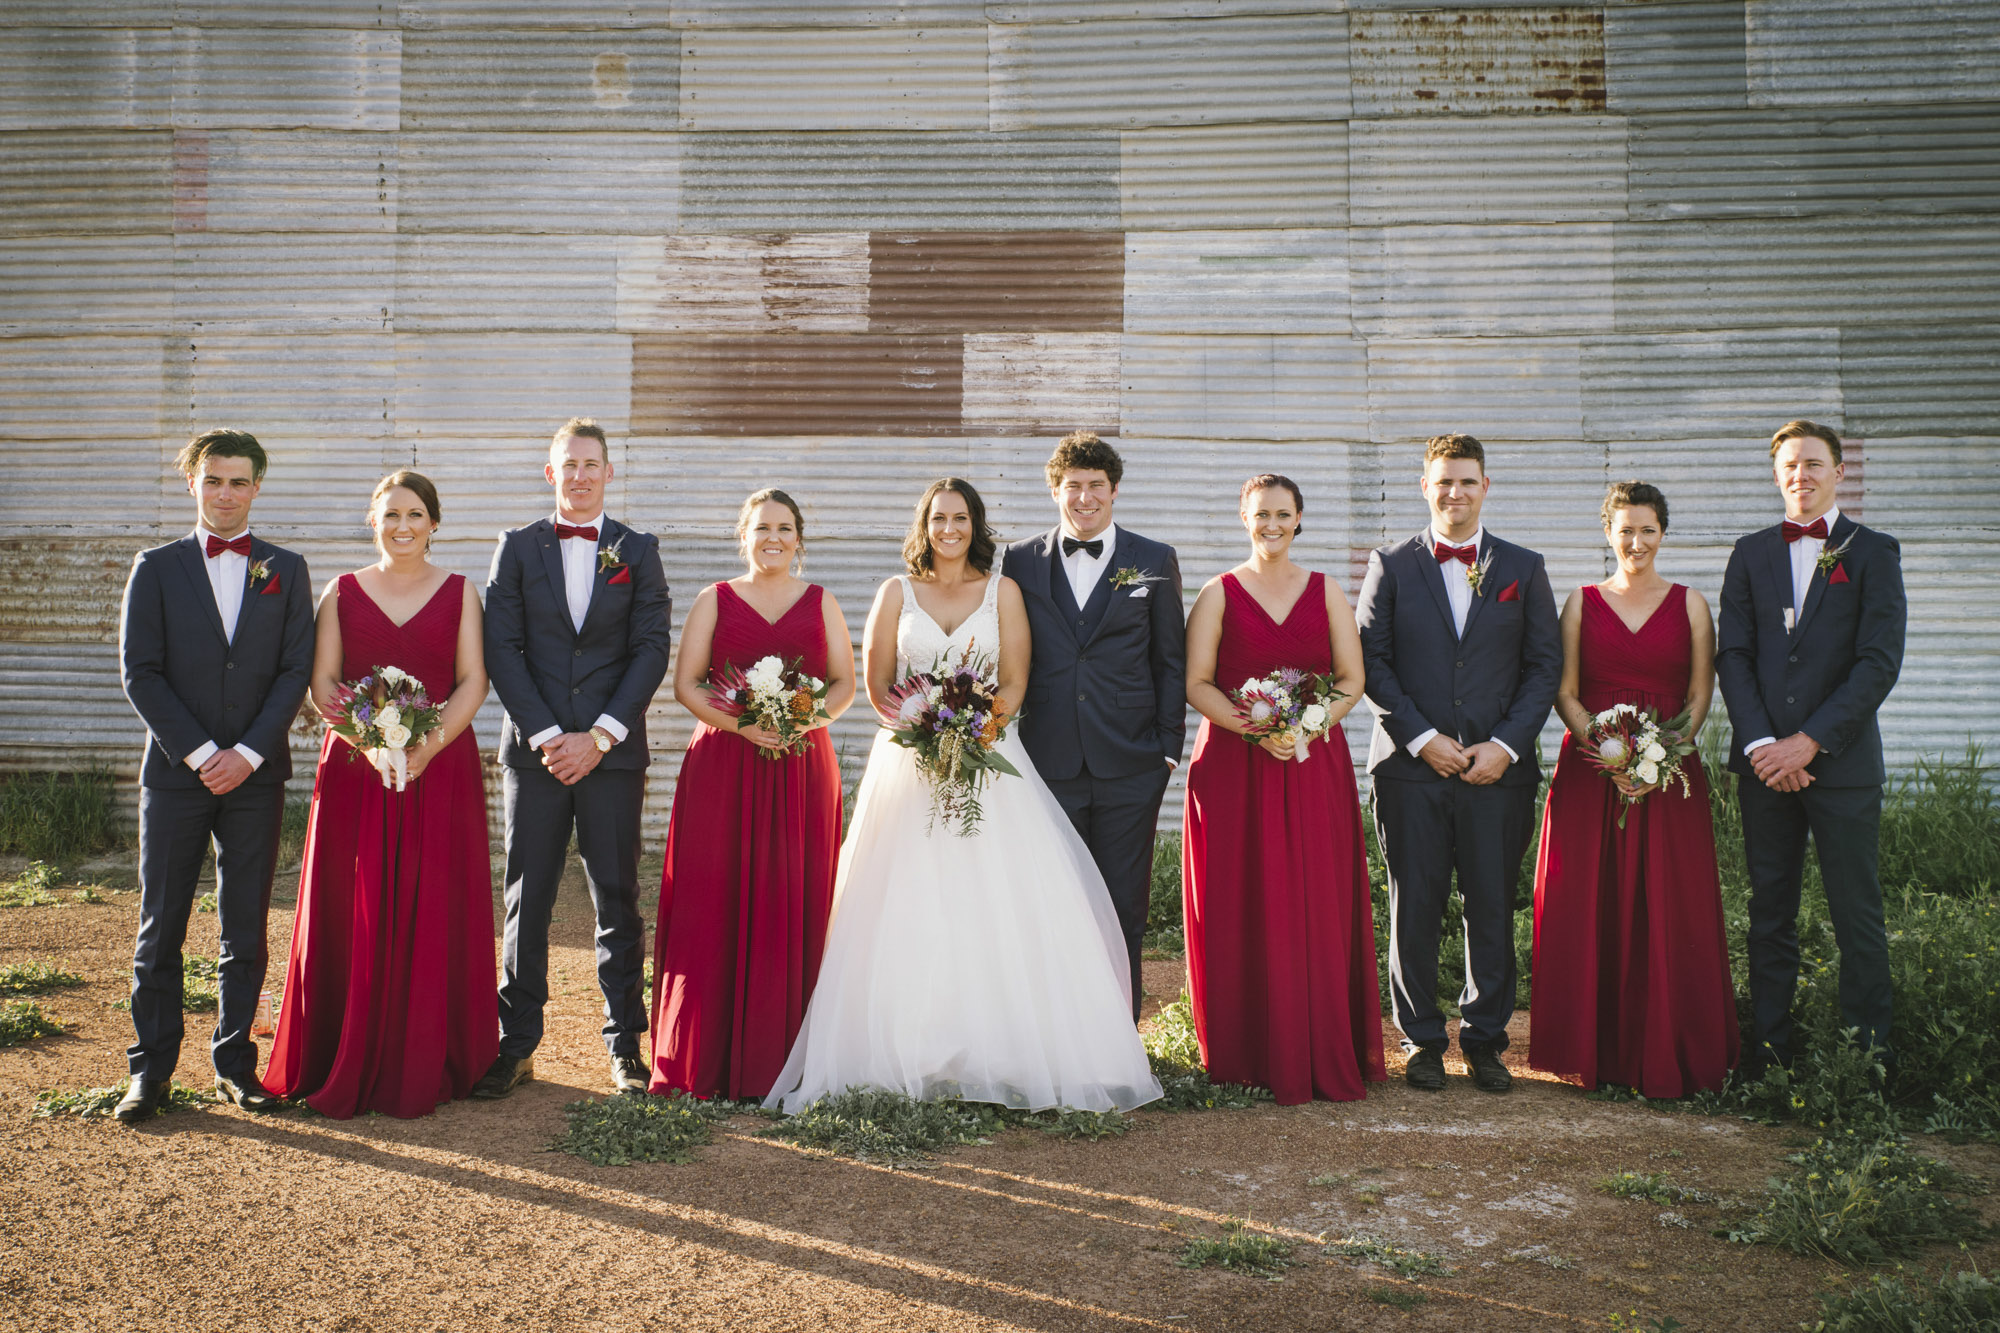 Angie-Roe-Photography-Wedding-Perth-Northam-Wheatbelt-Country-Rural (135).jpg